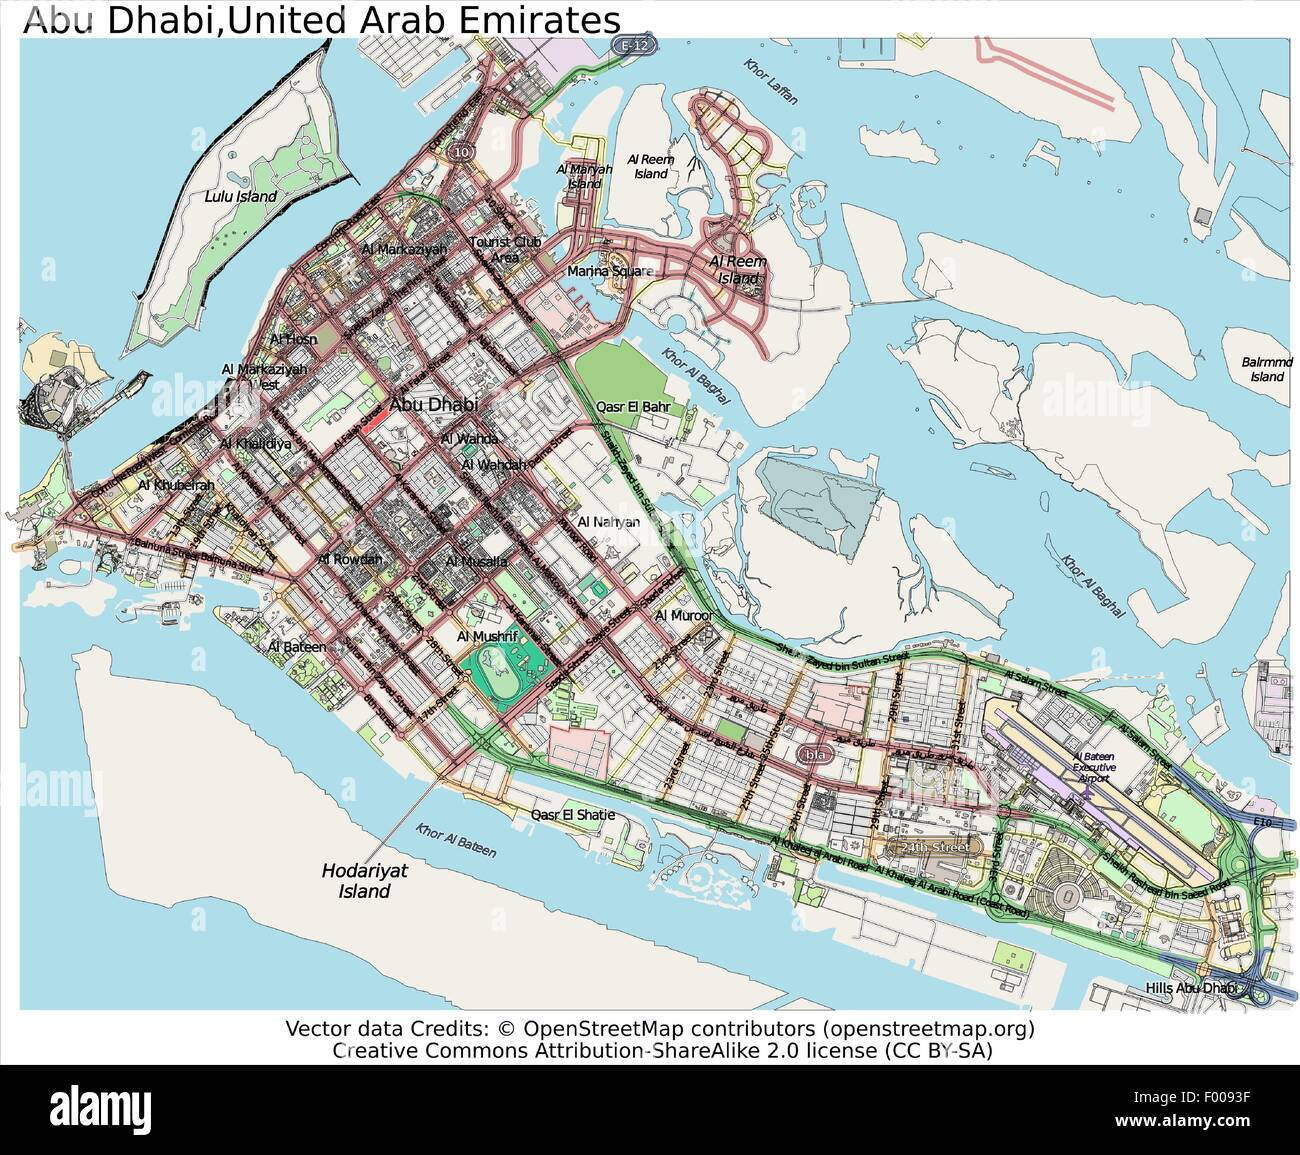 Abu Dhabi United Arab Emirates Country city island state location ...